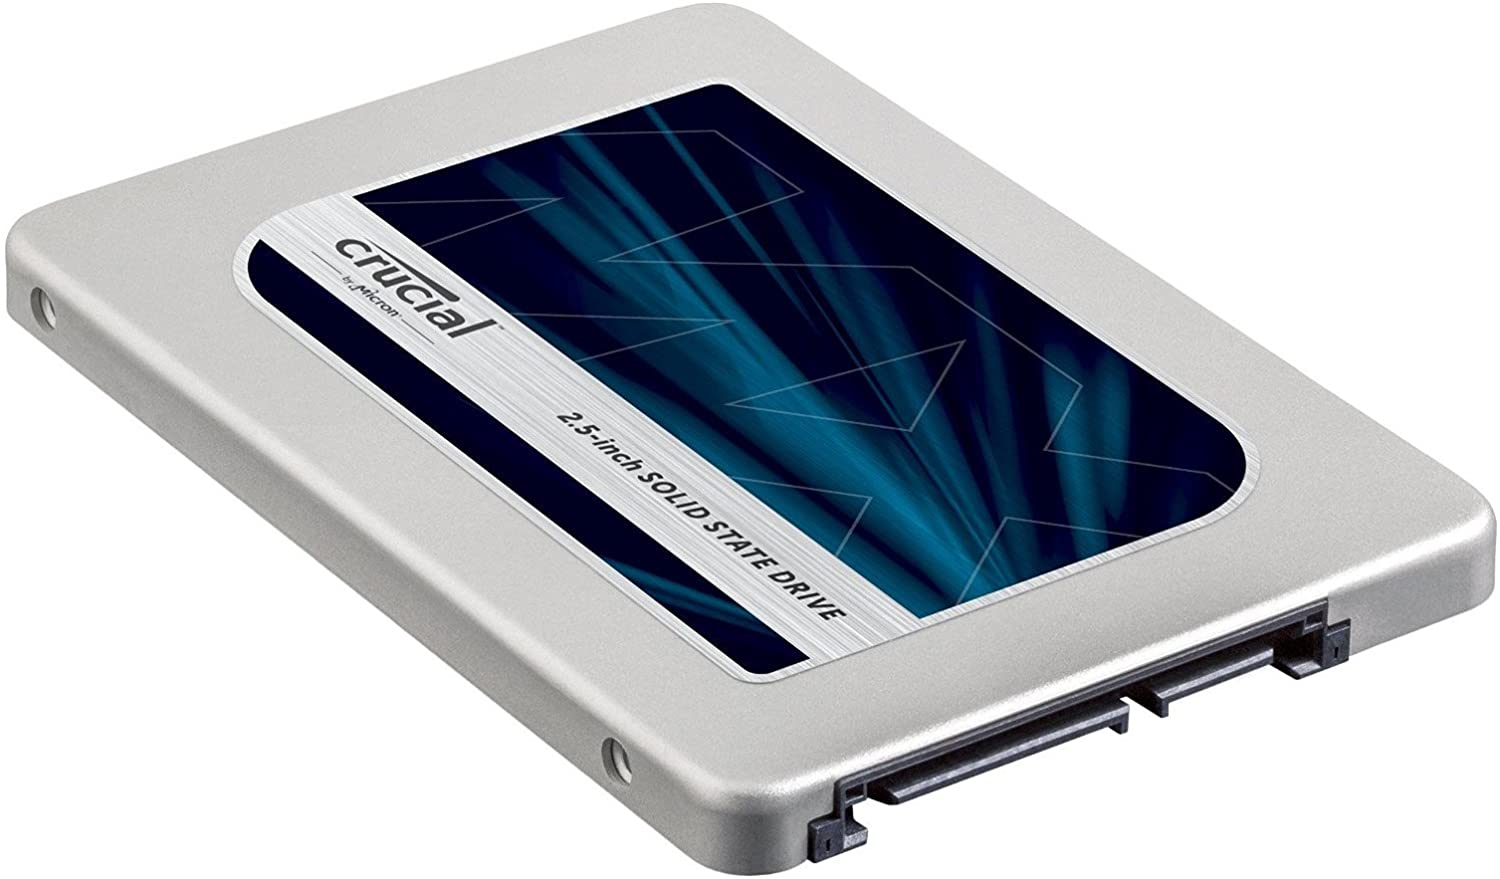 Crucial MX300 1TB SATA 2.5-Inch Solid State Drive